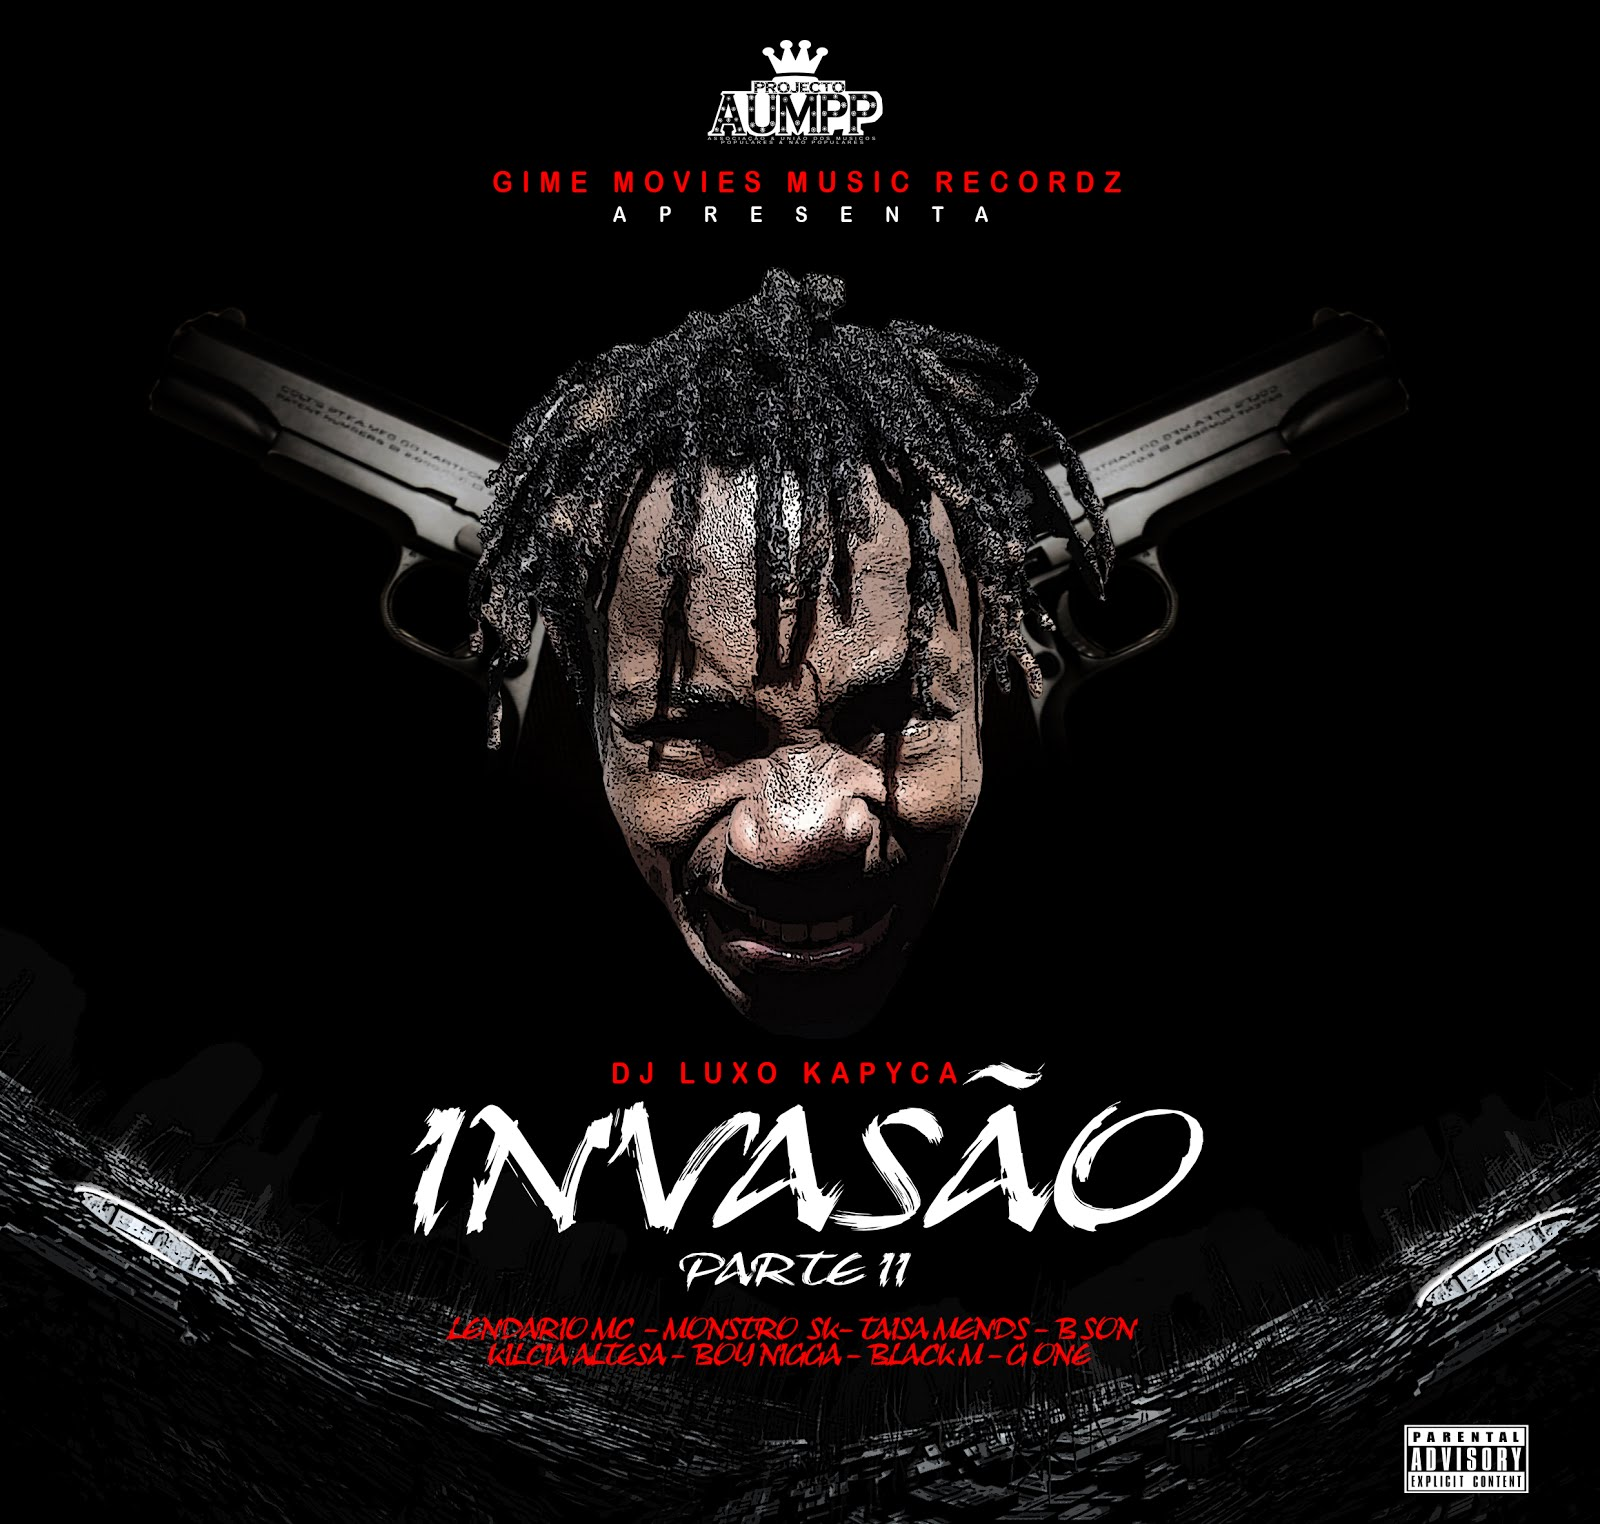 PROJECTO_AUMPP - Invasão Parte 2 (Rap) [Download]